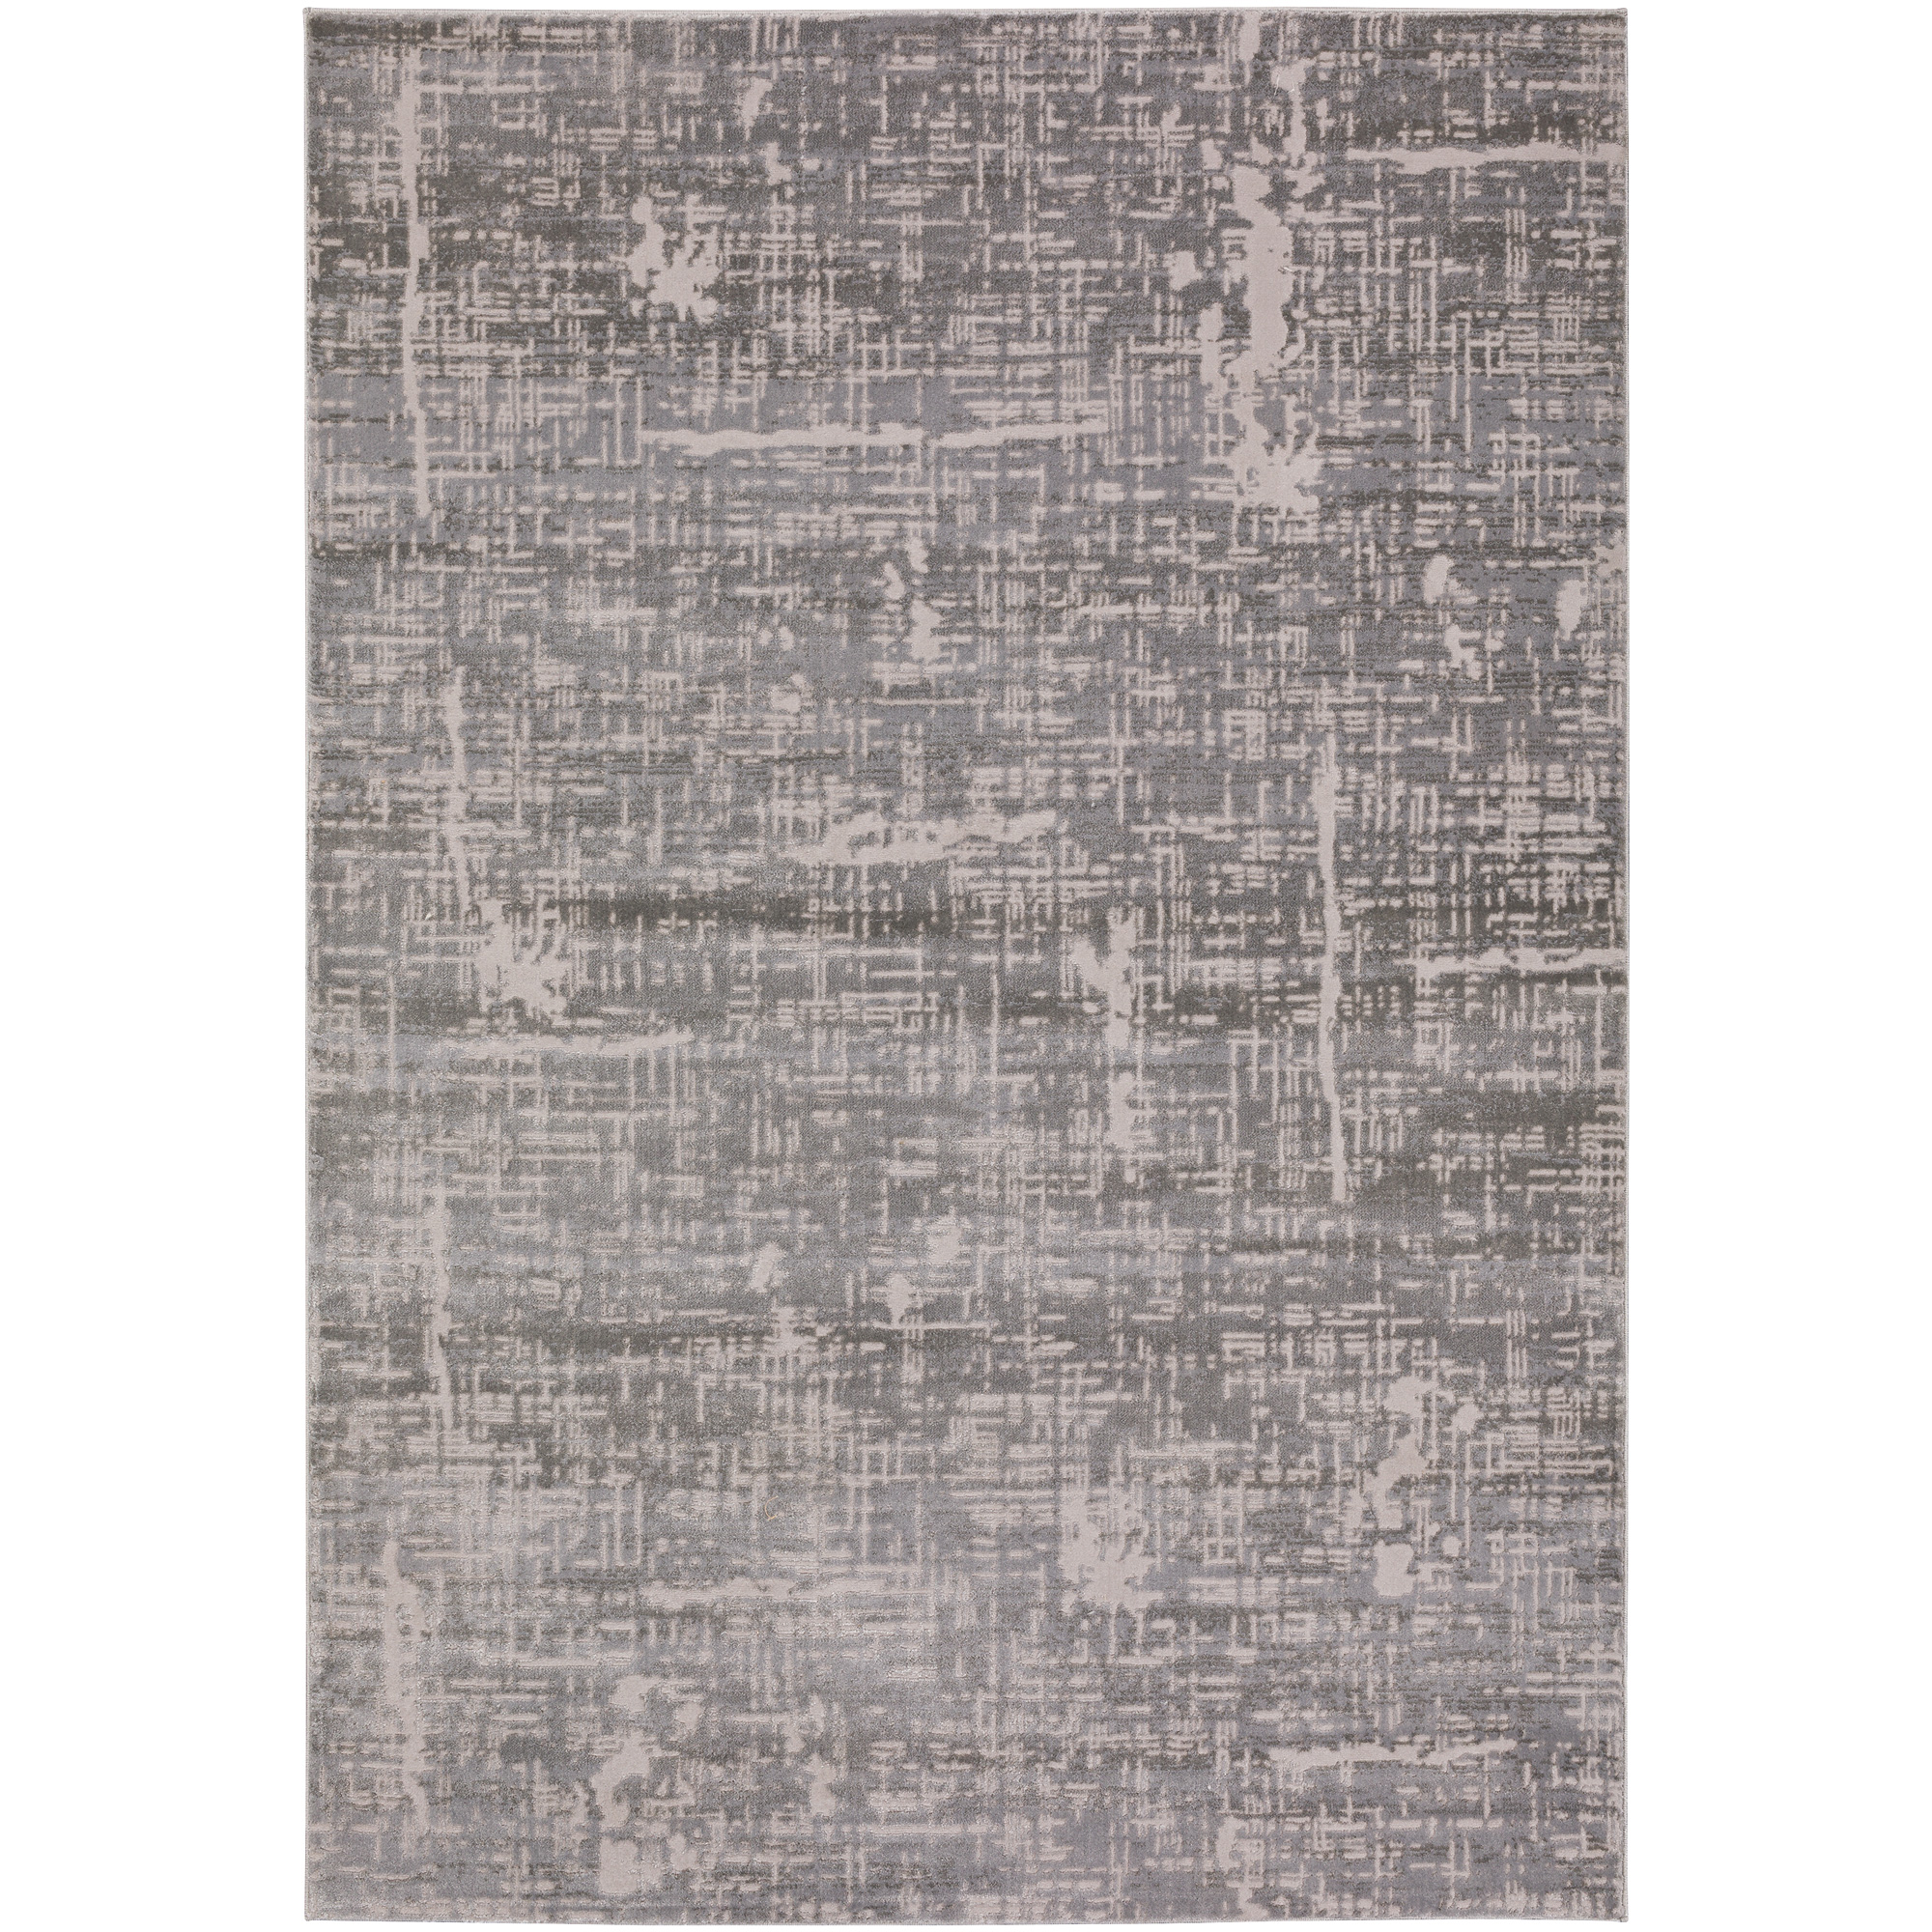 Dalyn Rug Company | Cascina Graphite 8x10 Area Rug